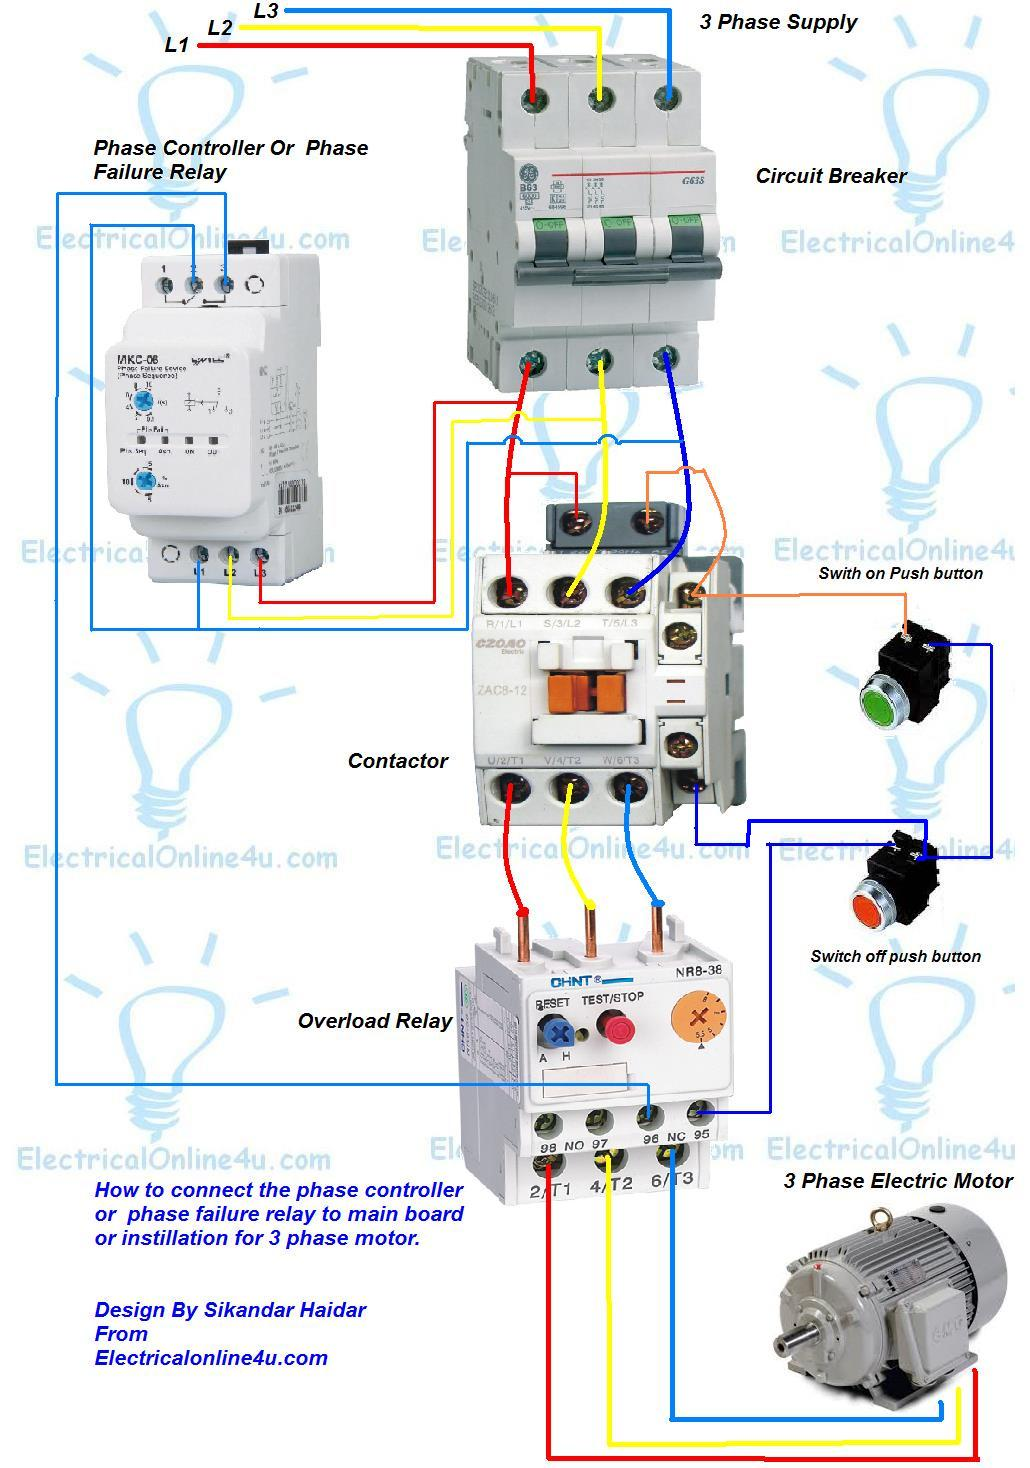 Phase%2Bfailure%2Brelay%2B %2Bphase%2Bcontroller%2Binstilaion%2Bin%2B3%2Bphase%2BMain%2Bboard%2Bor%2Bfor%2B3%2Bphase%2Bmotor phase controller wiring phase failure relay diagram electrical relay wiring diagram at eliteediting.co